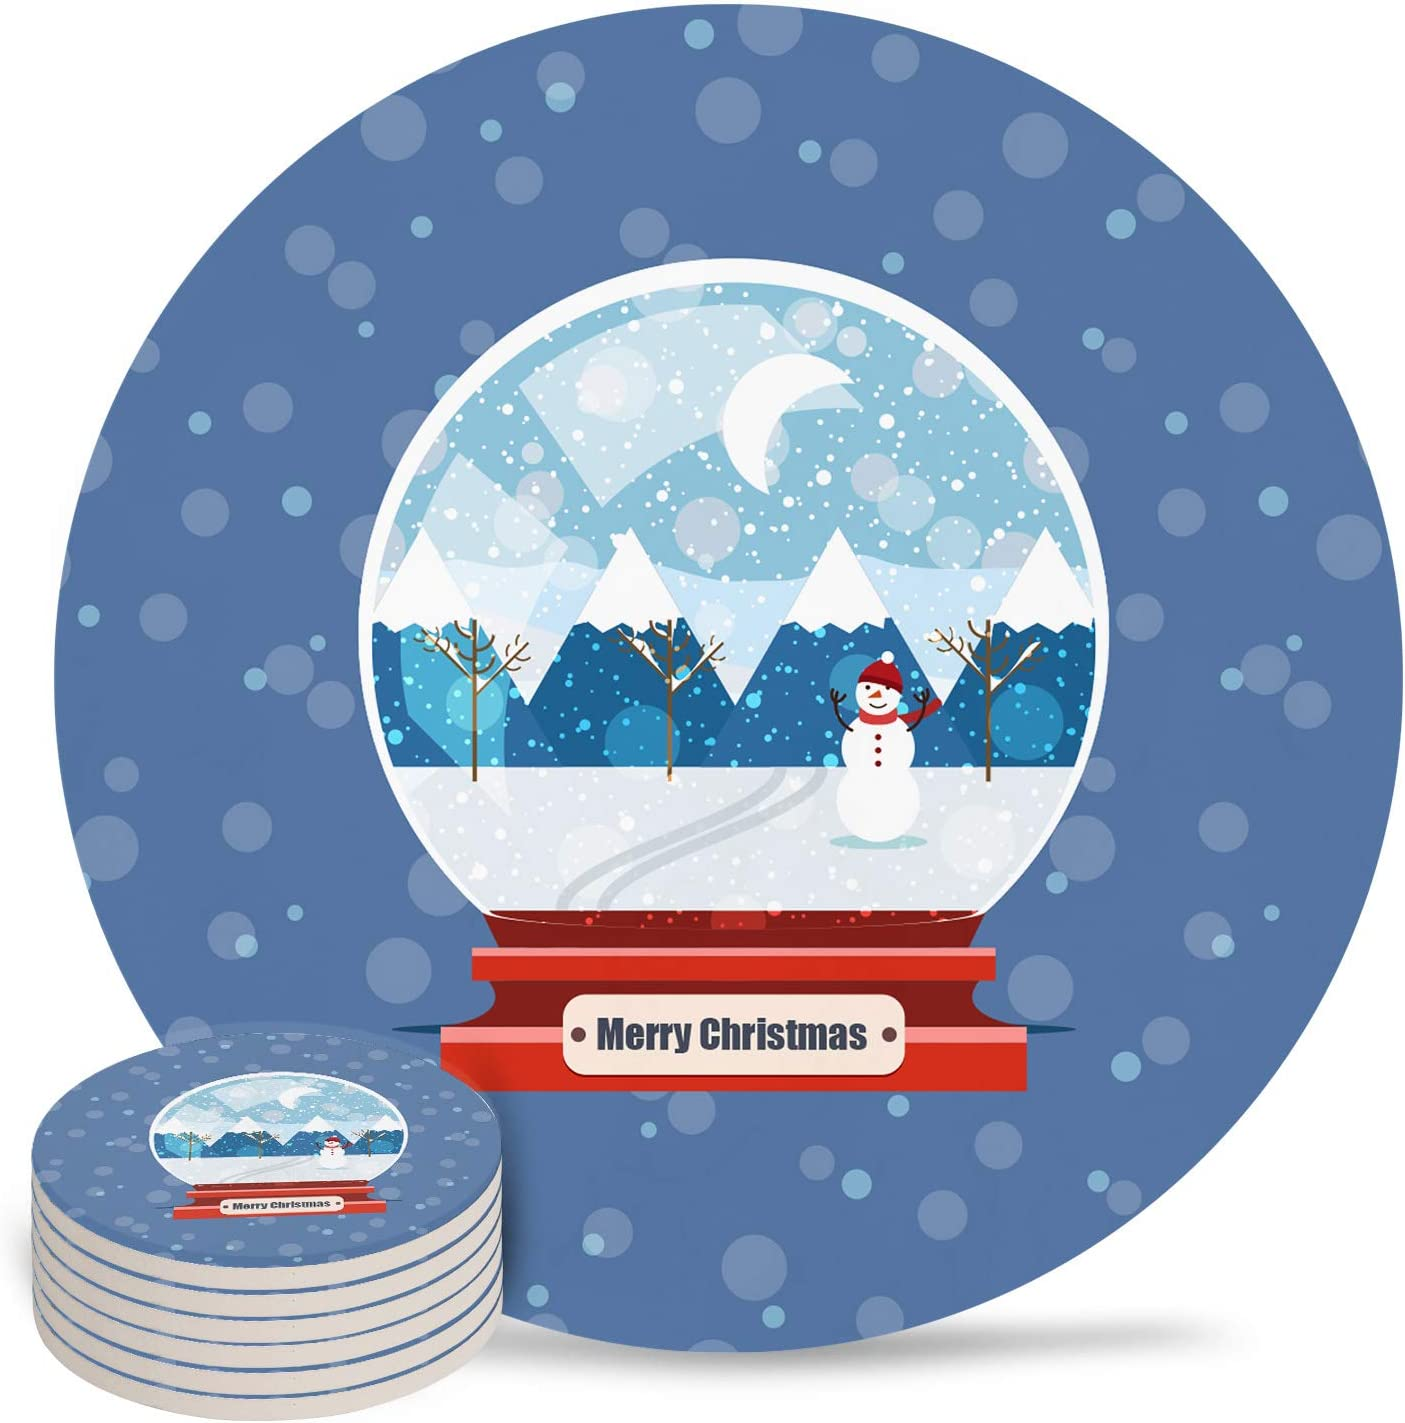 Coasters for Drinks Set of 6- Merry Christmas Crystal Ball Absorbent Ceramic Coaster with Cork Back for Bar Office Coffee, Housewarming Gifts